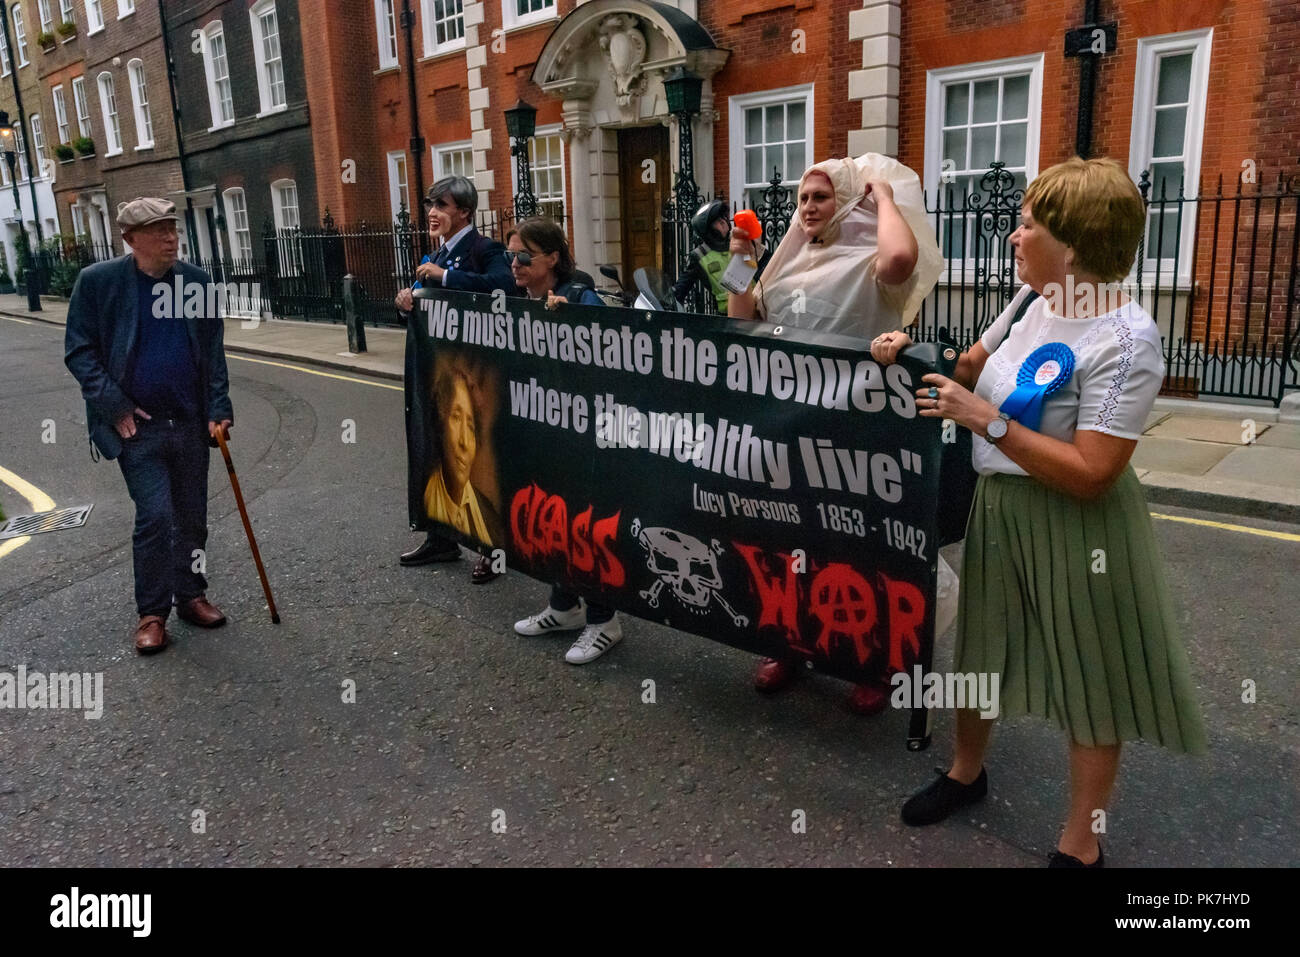 London, UK. 11th Sept 2018. Class War protesters including a woman dressed as a giant penis at the Class War protest outside the £5.6m  Westminster town house of Jacob Rees-Mogg calling for the release of Veronica Cook, his nanny who now looks after him and his six children. They say she ceased to exist as an independent human 50 years ago and has been subsumed into the Mogg family as if she was being confined in the tower of a gothic mansion. Credit: Peter Marshall/Alamy Live News Stock Photo